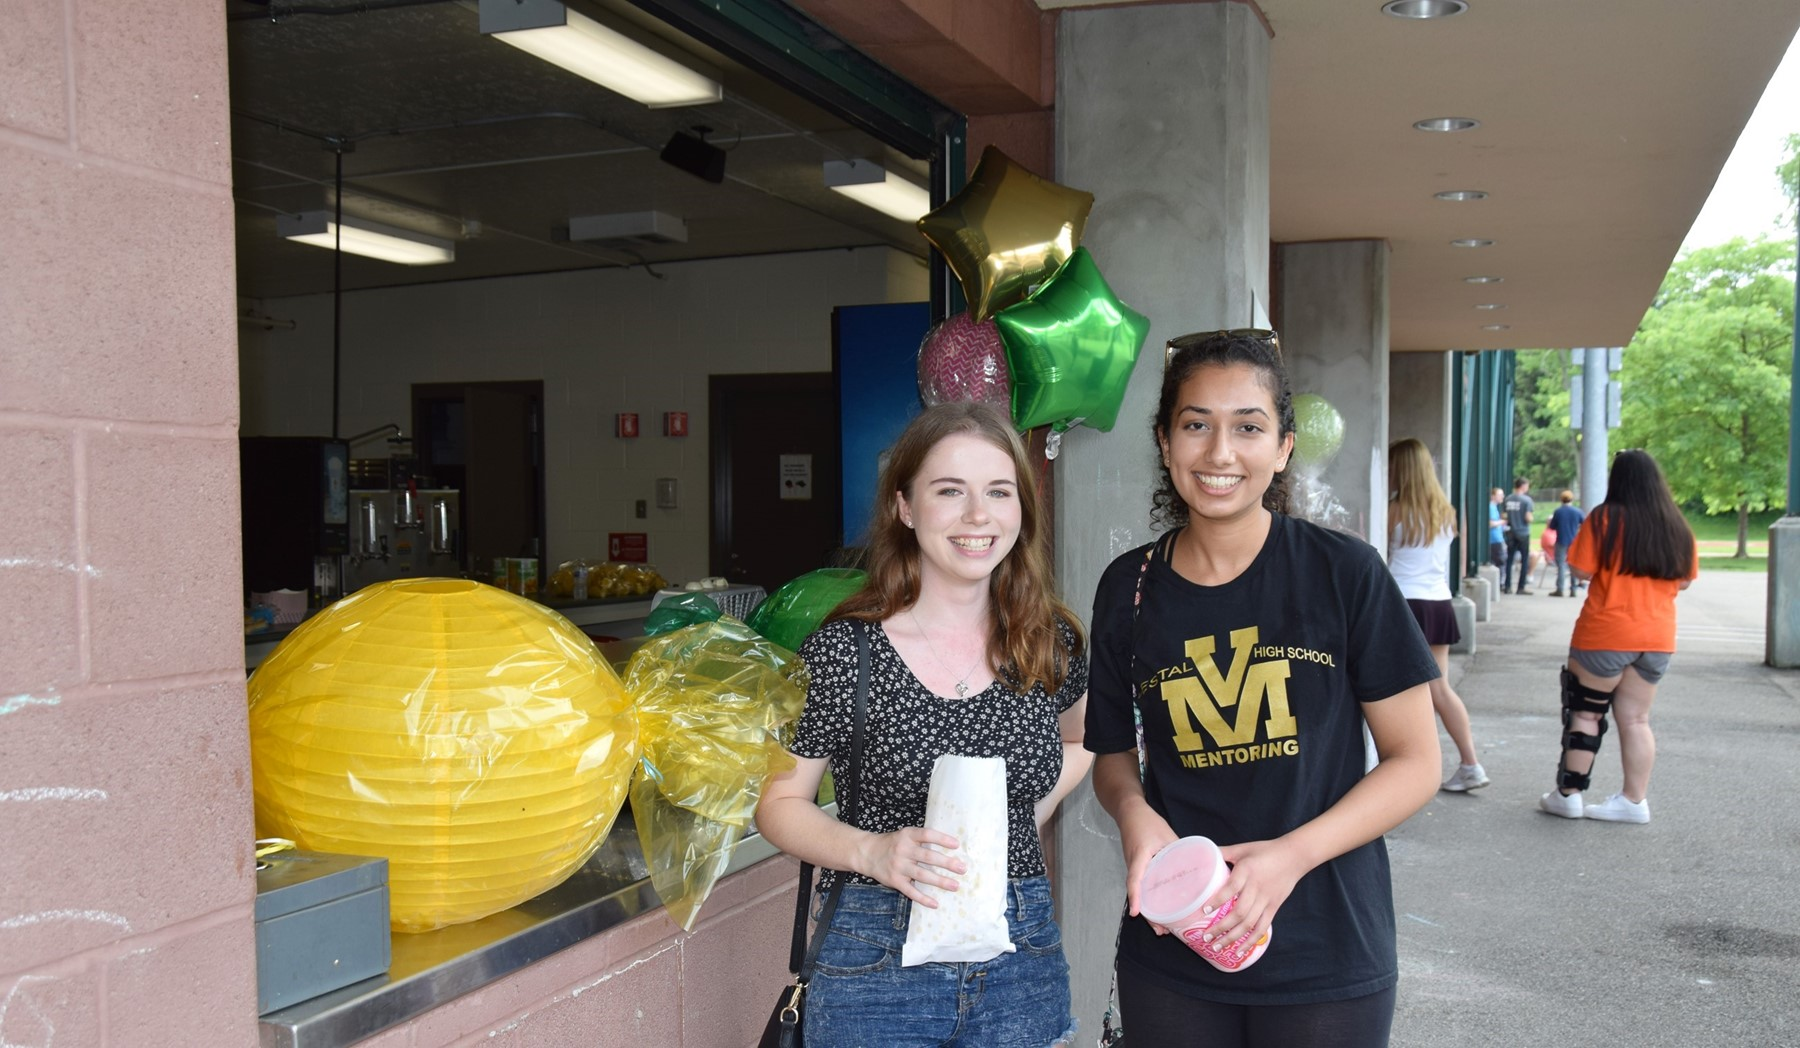 Two Vestal High School senior girls leave the concession stand in Hoover Stadium with cotton candy and popcorn.